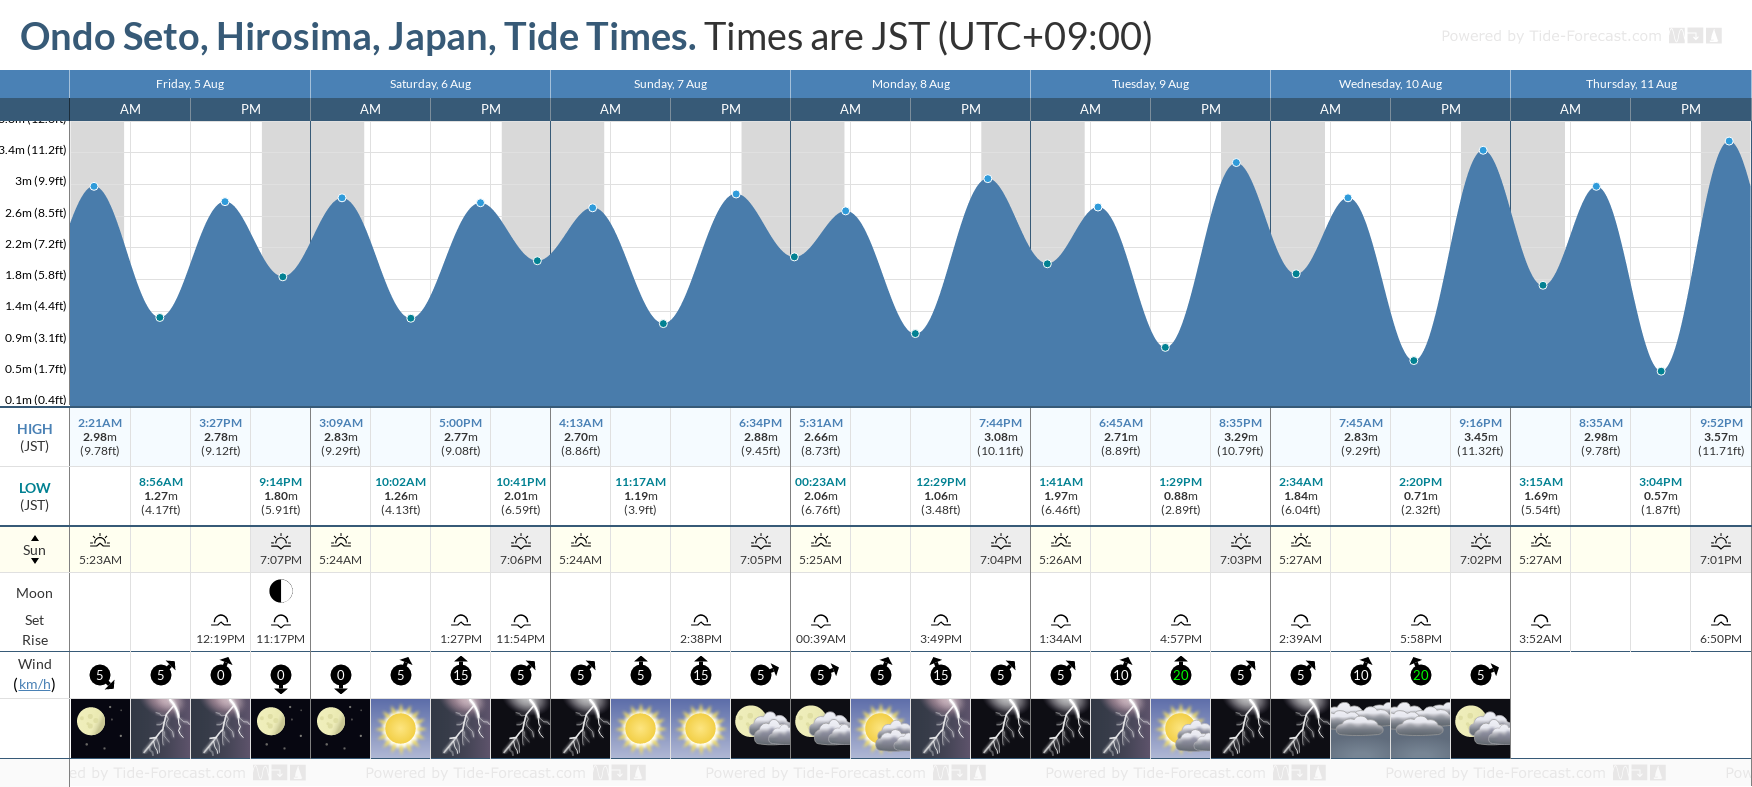 Ondo Seto, Hirosima, Japan Tide Chart including high and low tide tide times for the next 7 days